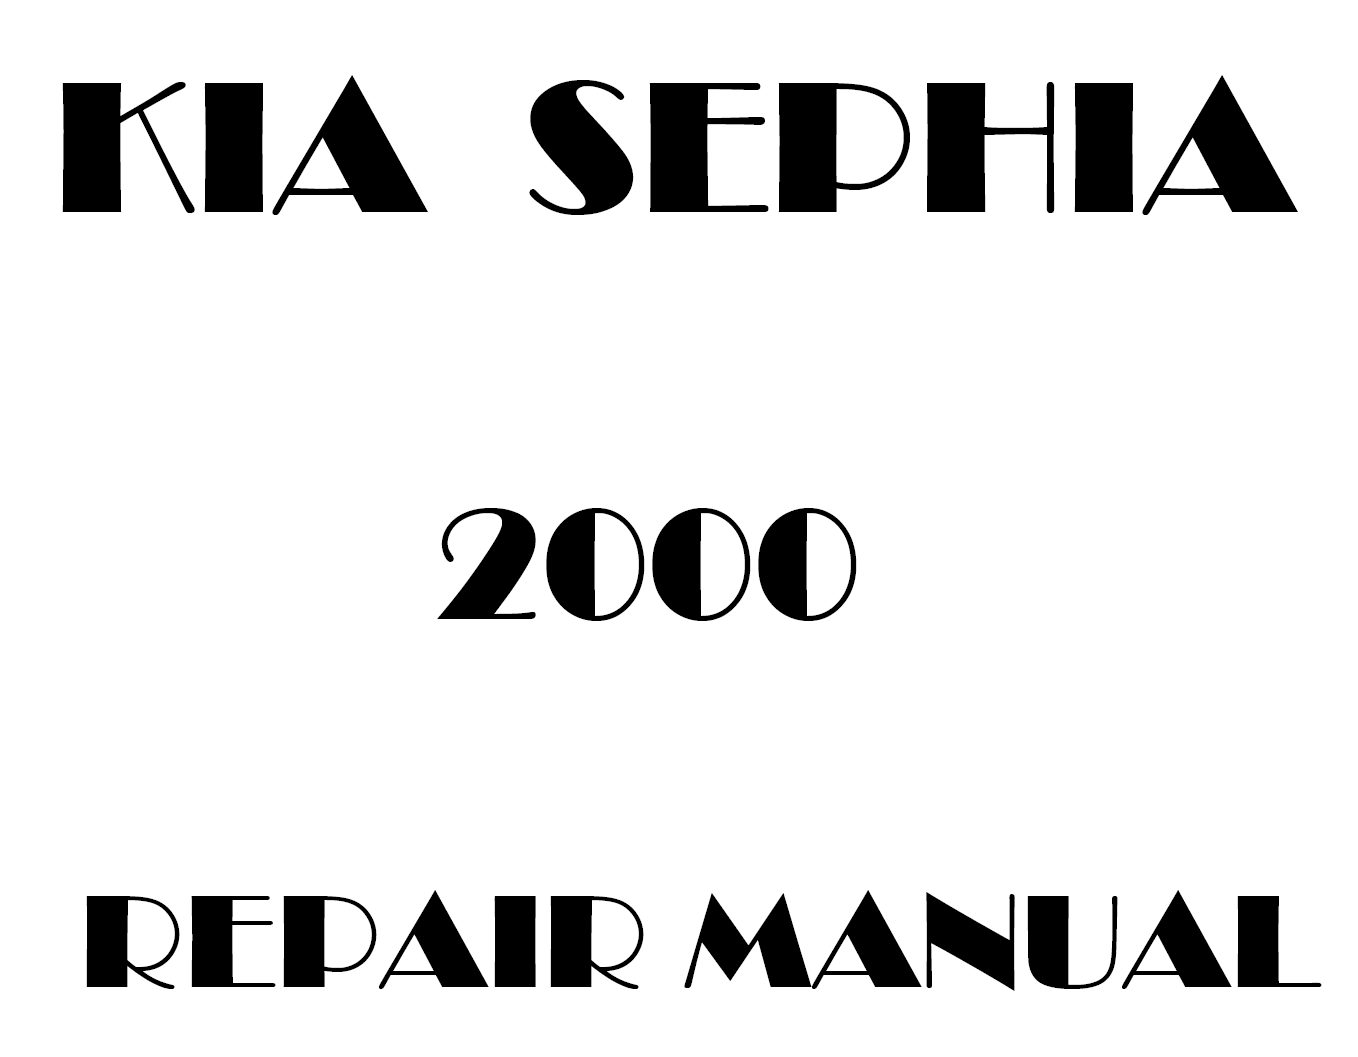 2000 Kia Sephia repair manual